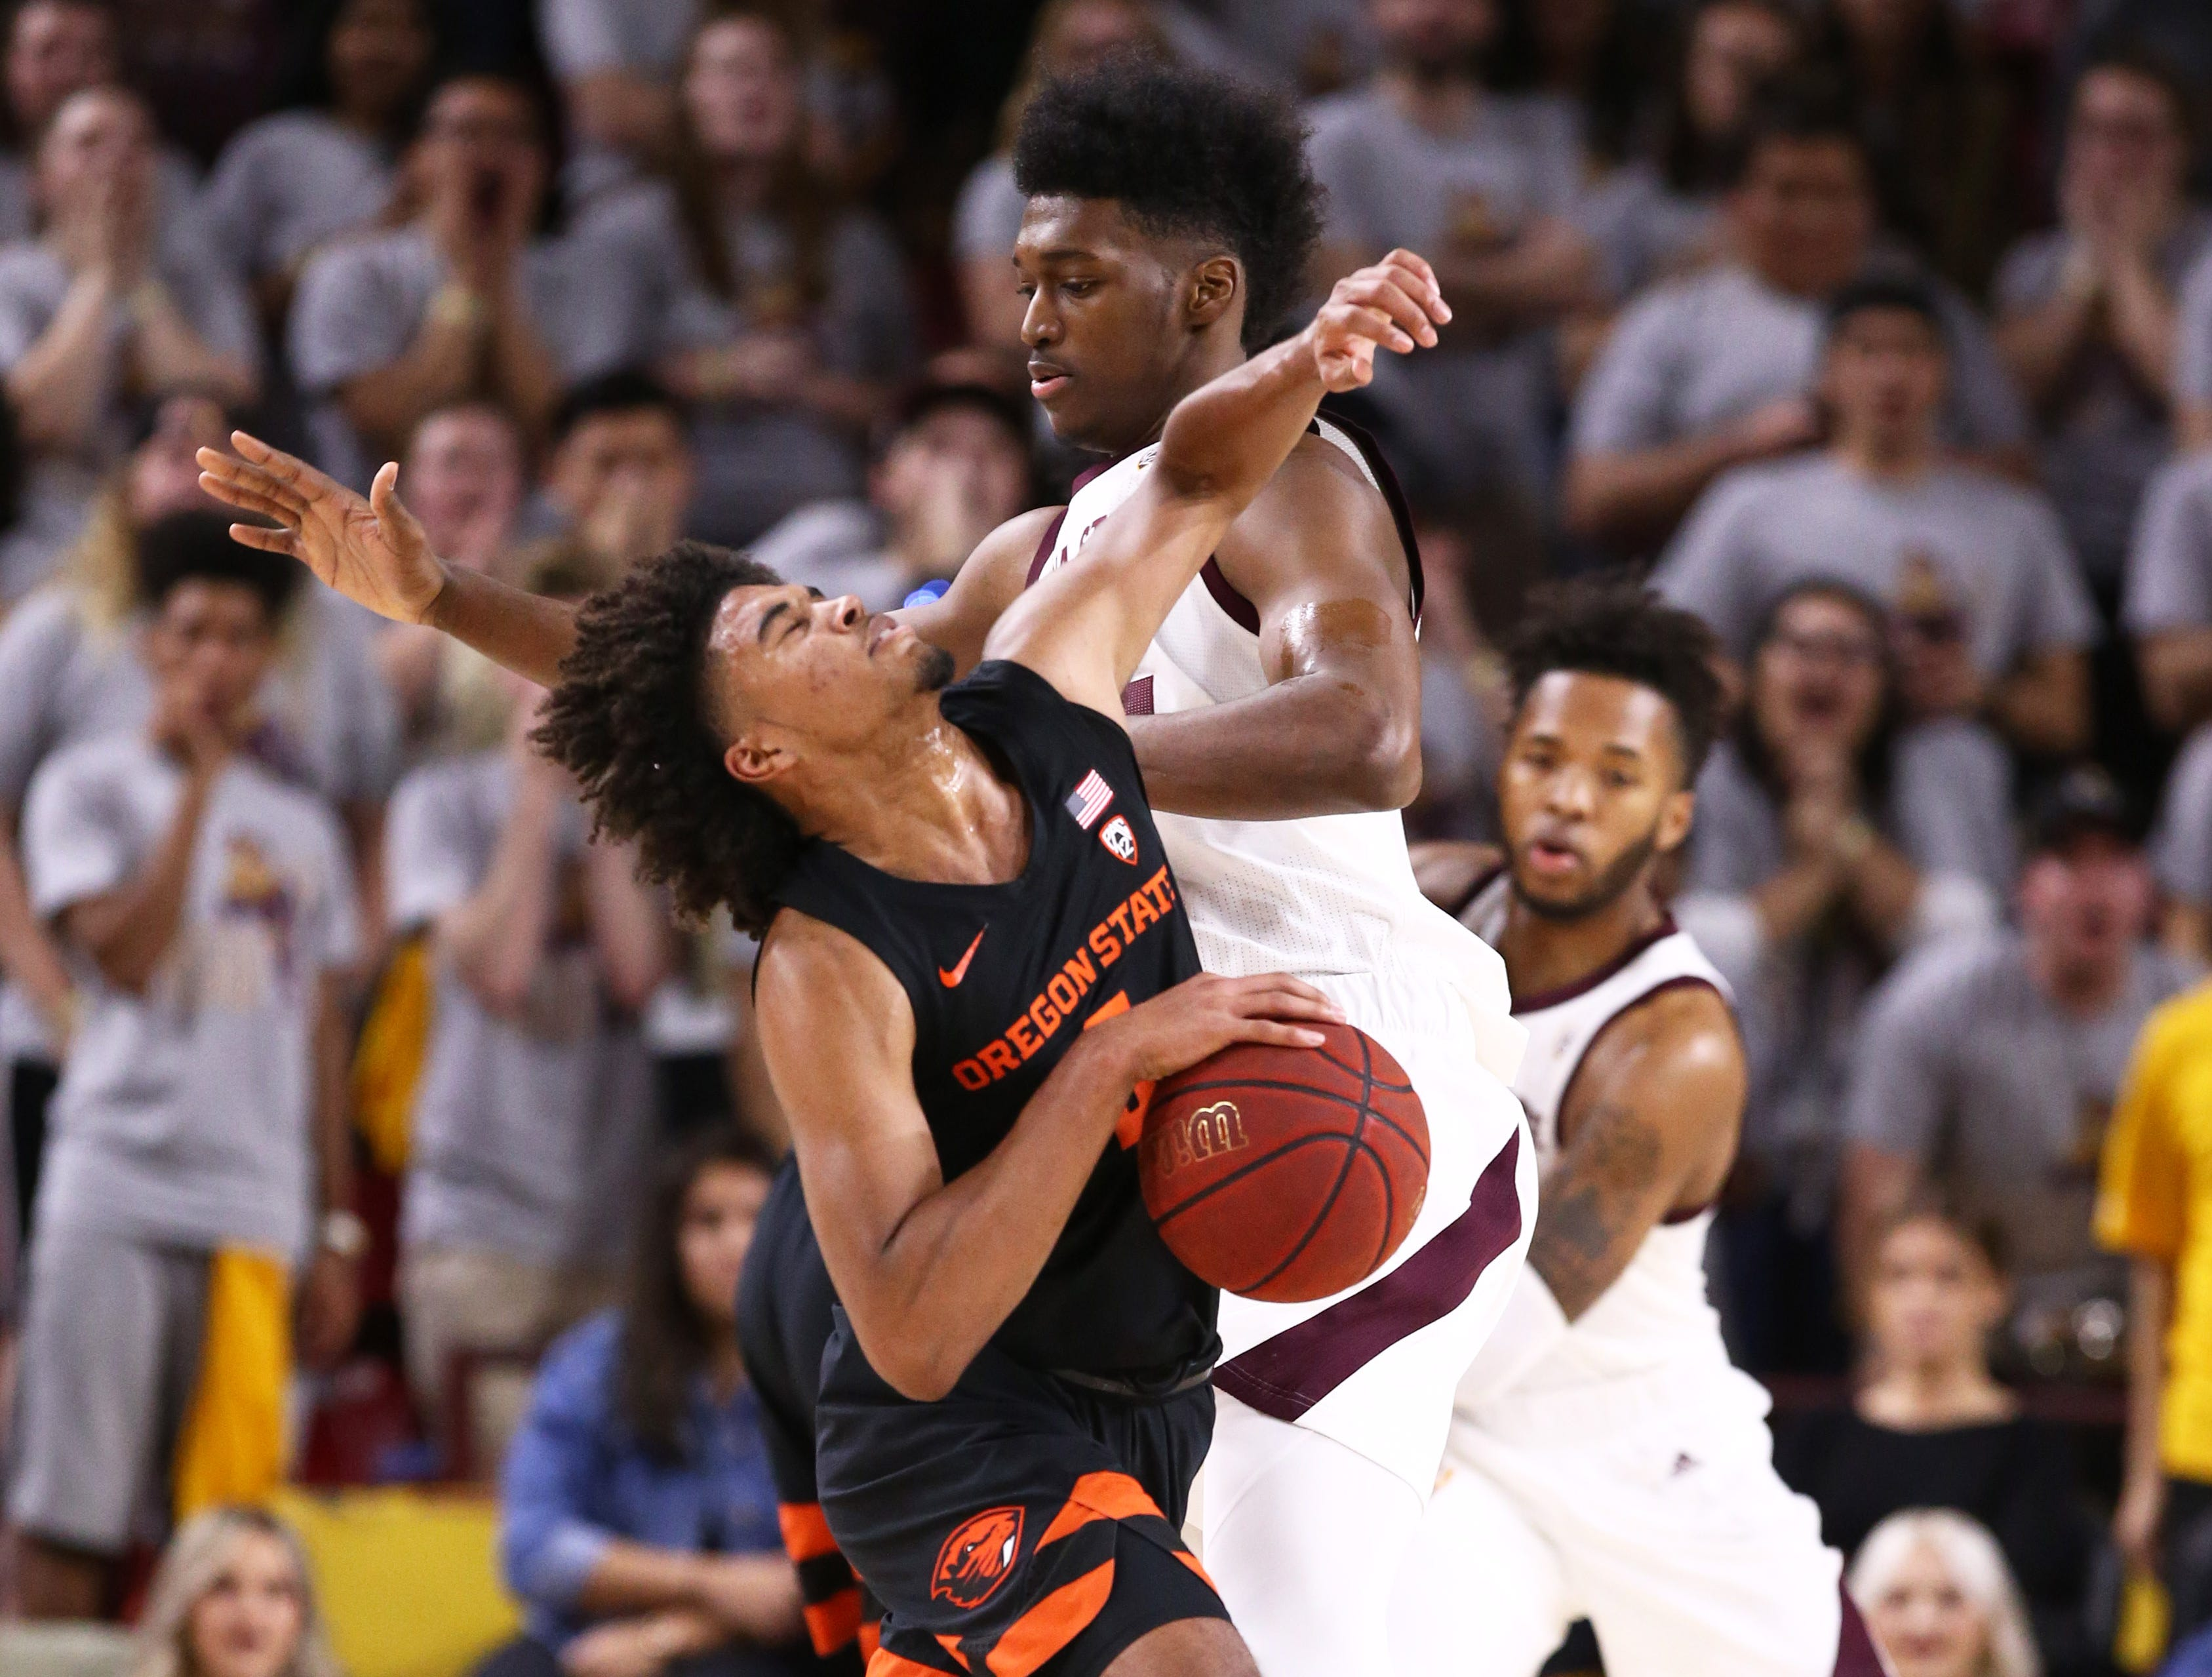 Oregon State Beavers guard Ethan Thompson collides with Arizona State Sun Devils' De'Quon Lake in the second half on Jan. 17 at Wells Fargo Arena in Tempe.